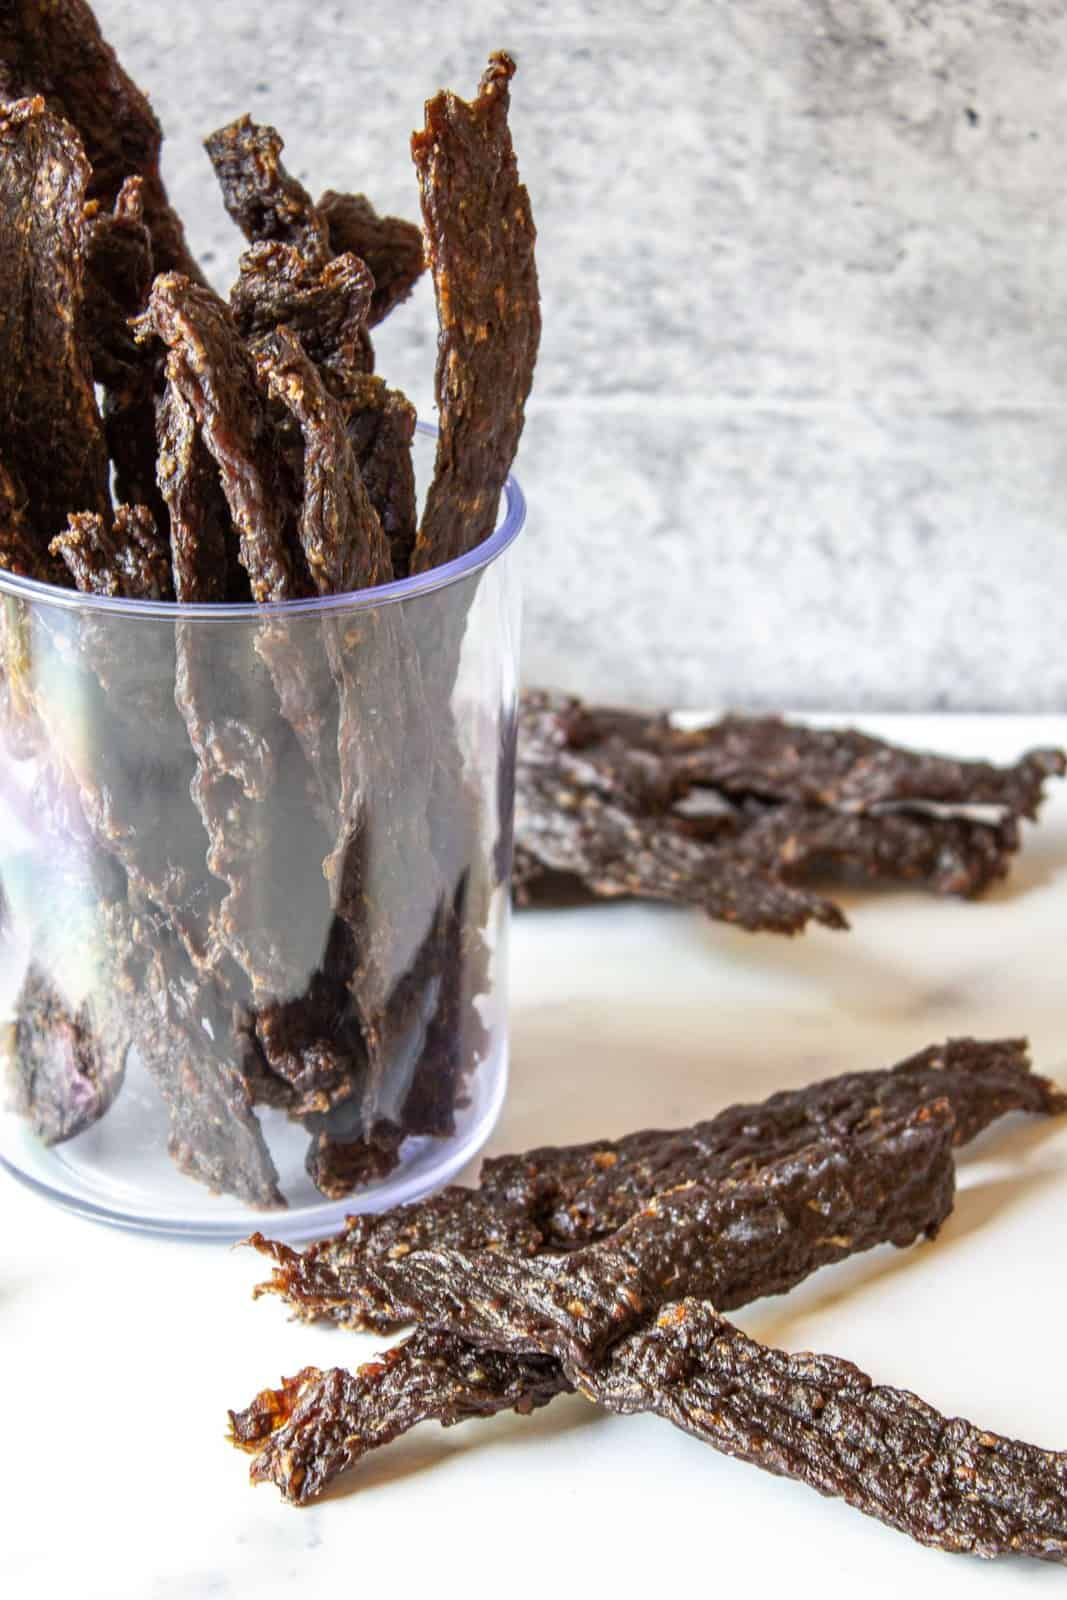 Dried jerky on a white surface with a jar filled of jerky in the background.